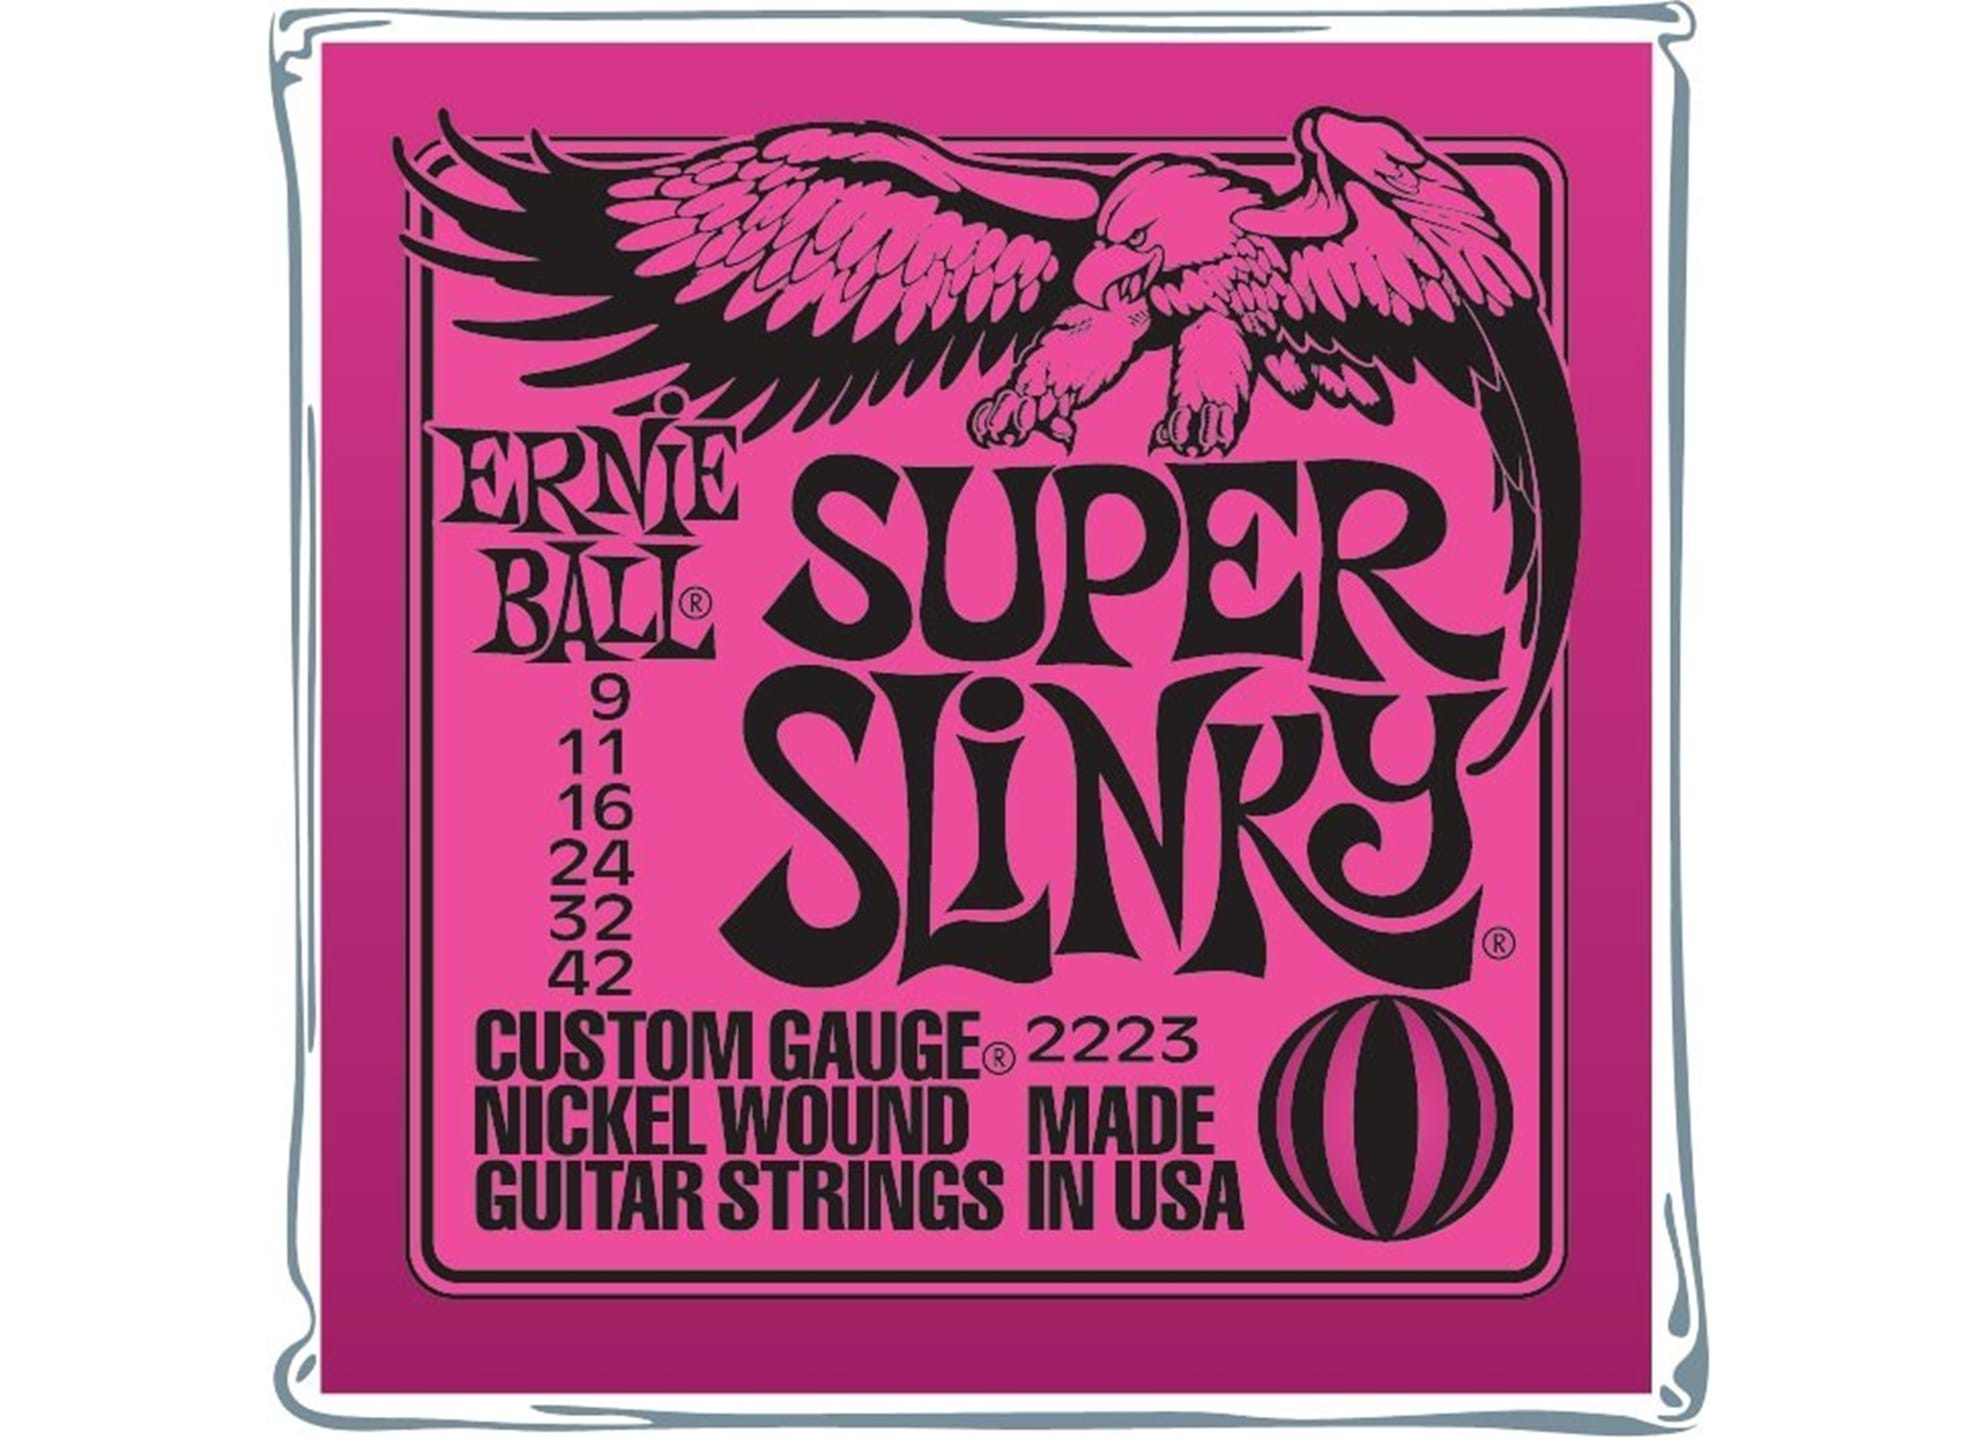 009-042 Super Slinky Nickel Wound 2223